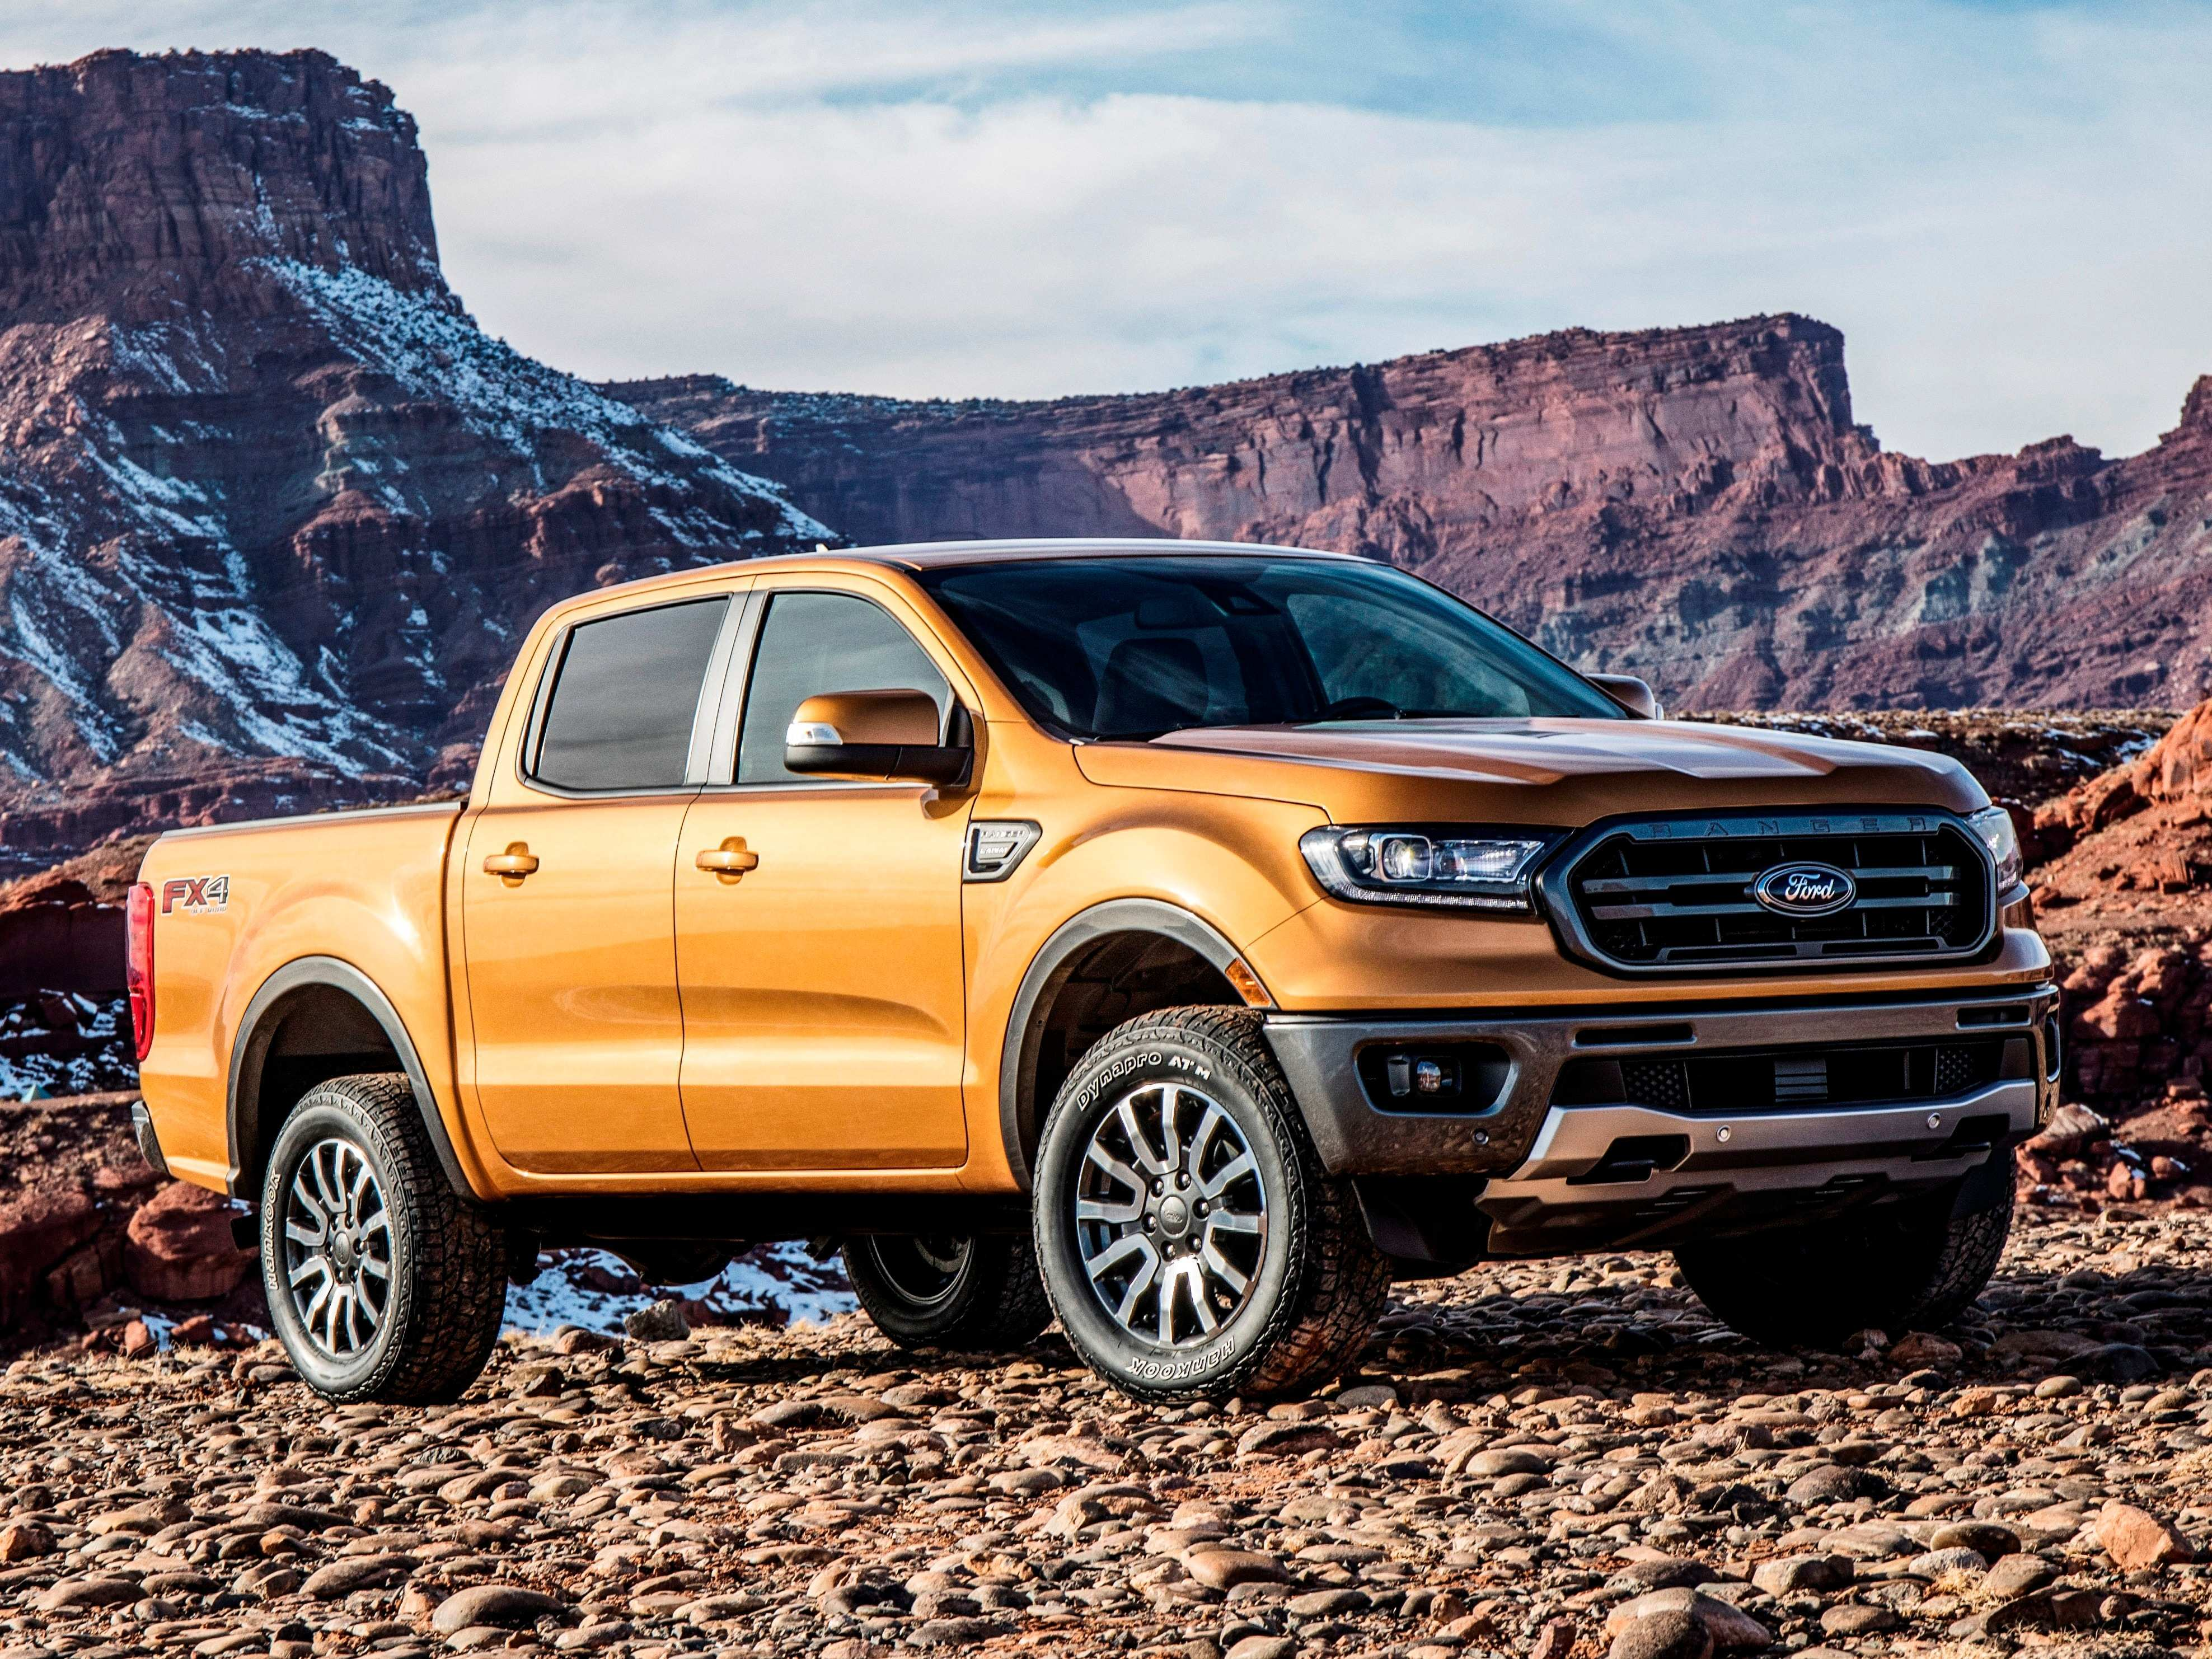 12 Gallery of The Is The 2019 Ford Ranger Out Yet Review And Price Performance with The Is The 2019 Ford Ranger Out Yet Review And Price